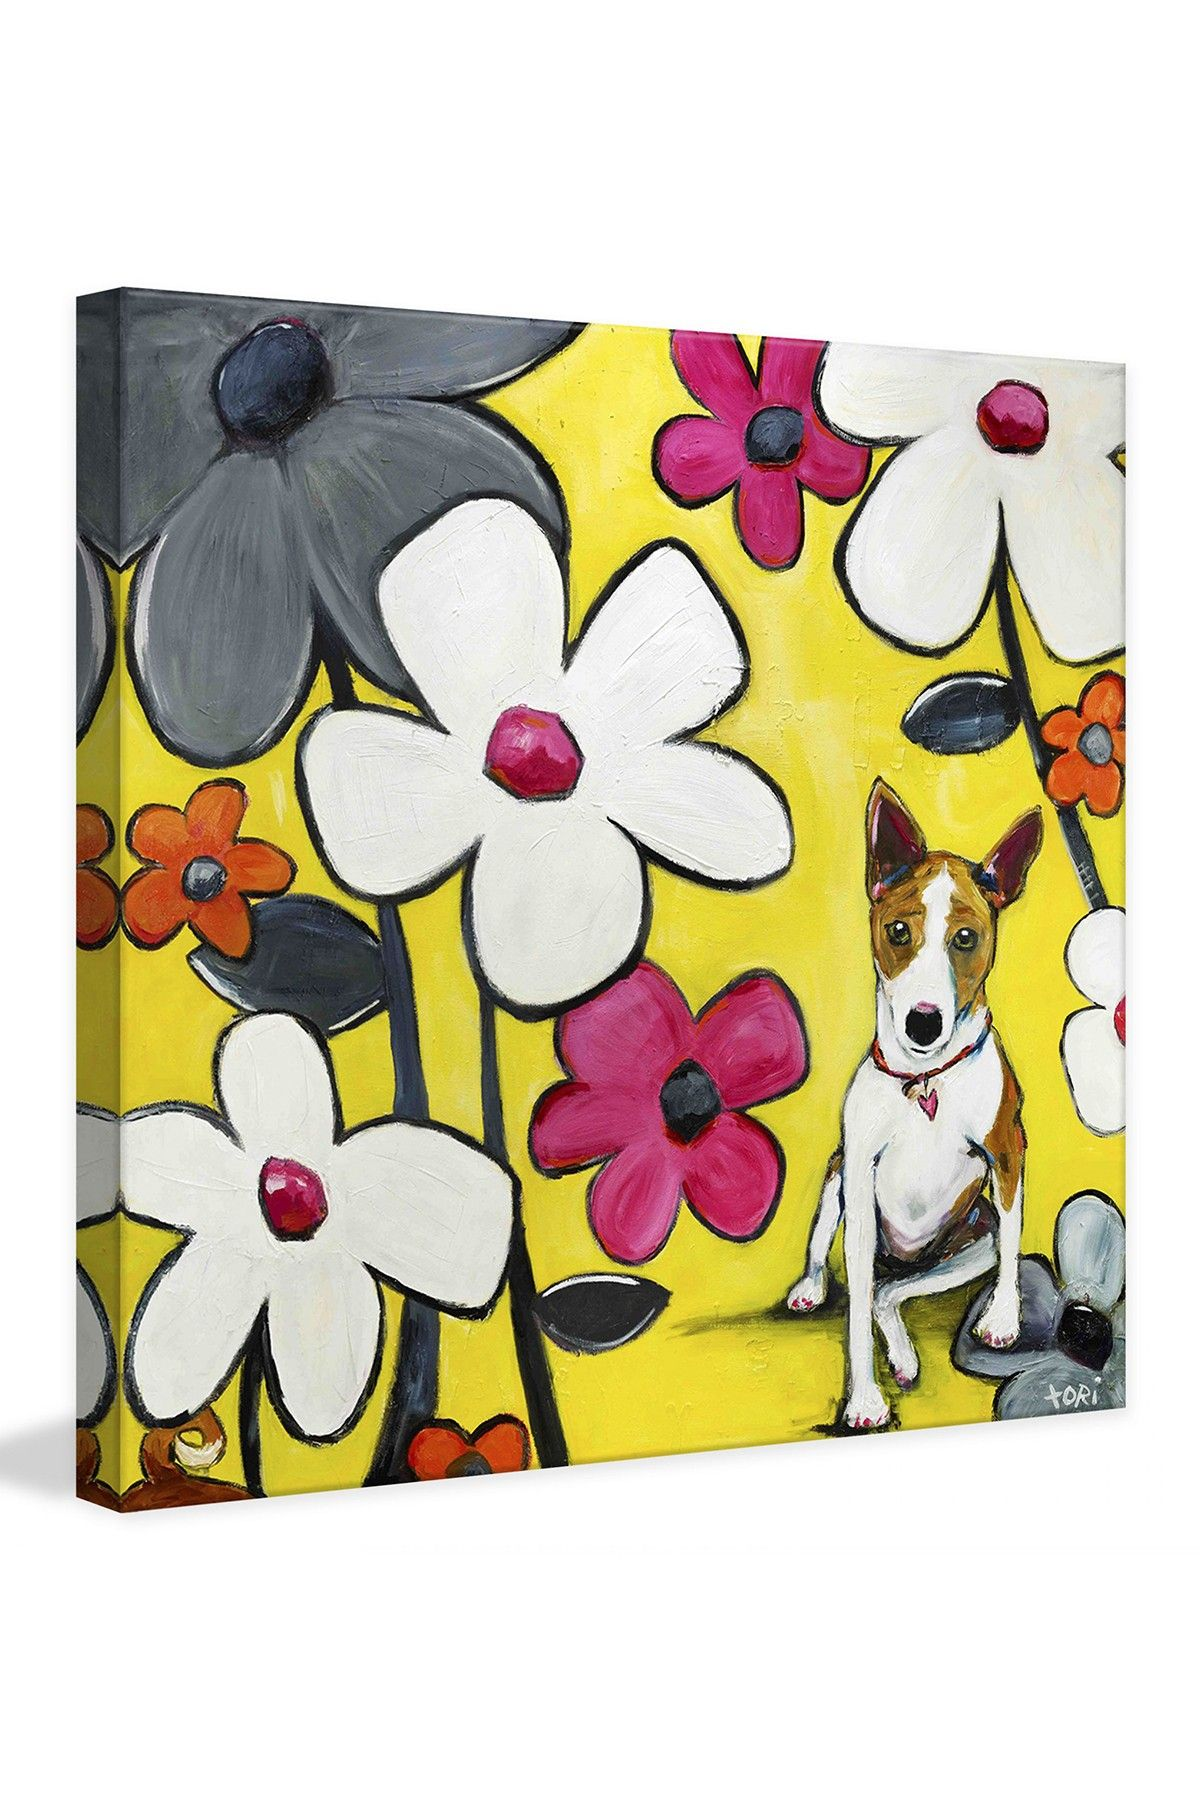 Magnificent Walmart Wall Art Canvas Images - The Wall Art ...